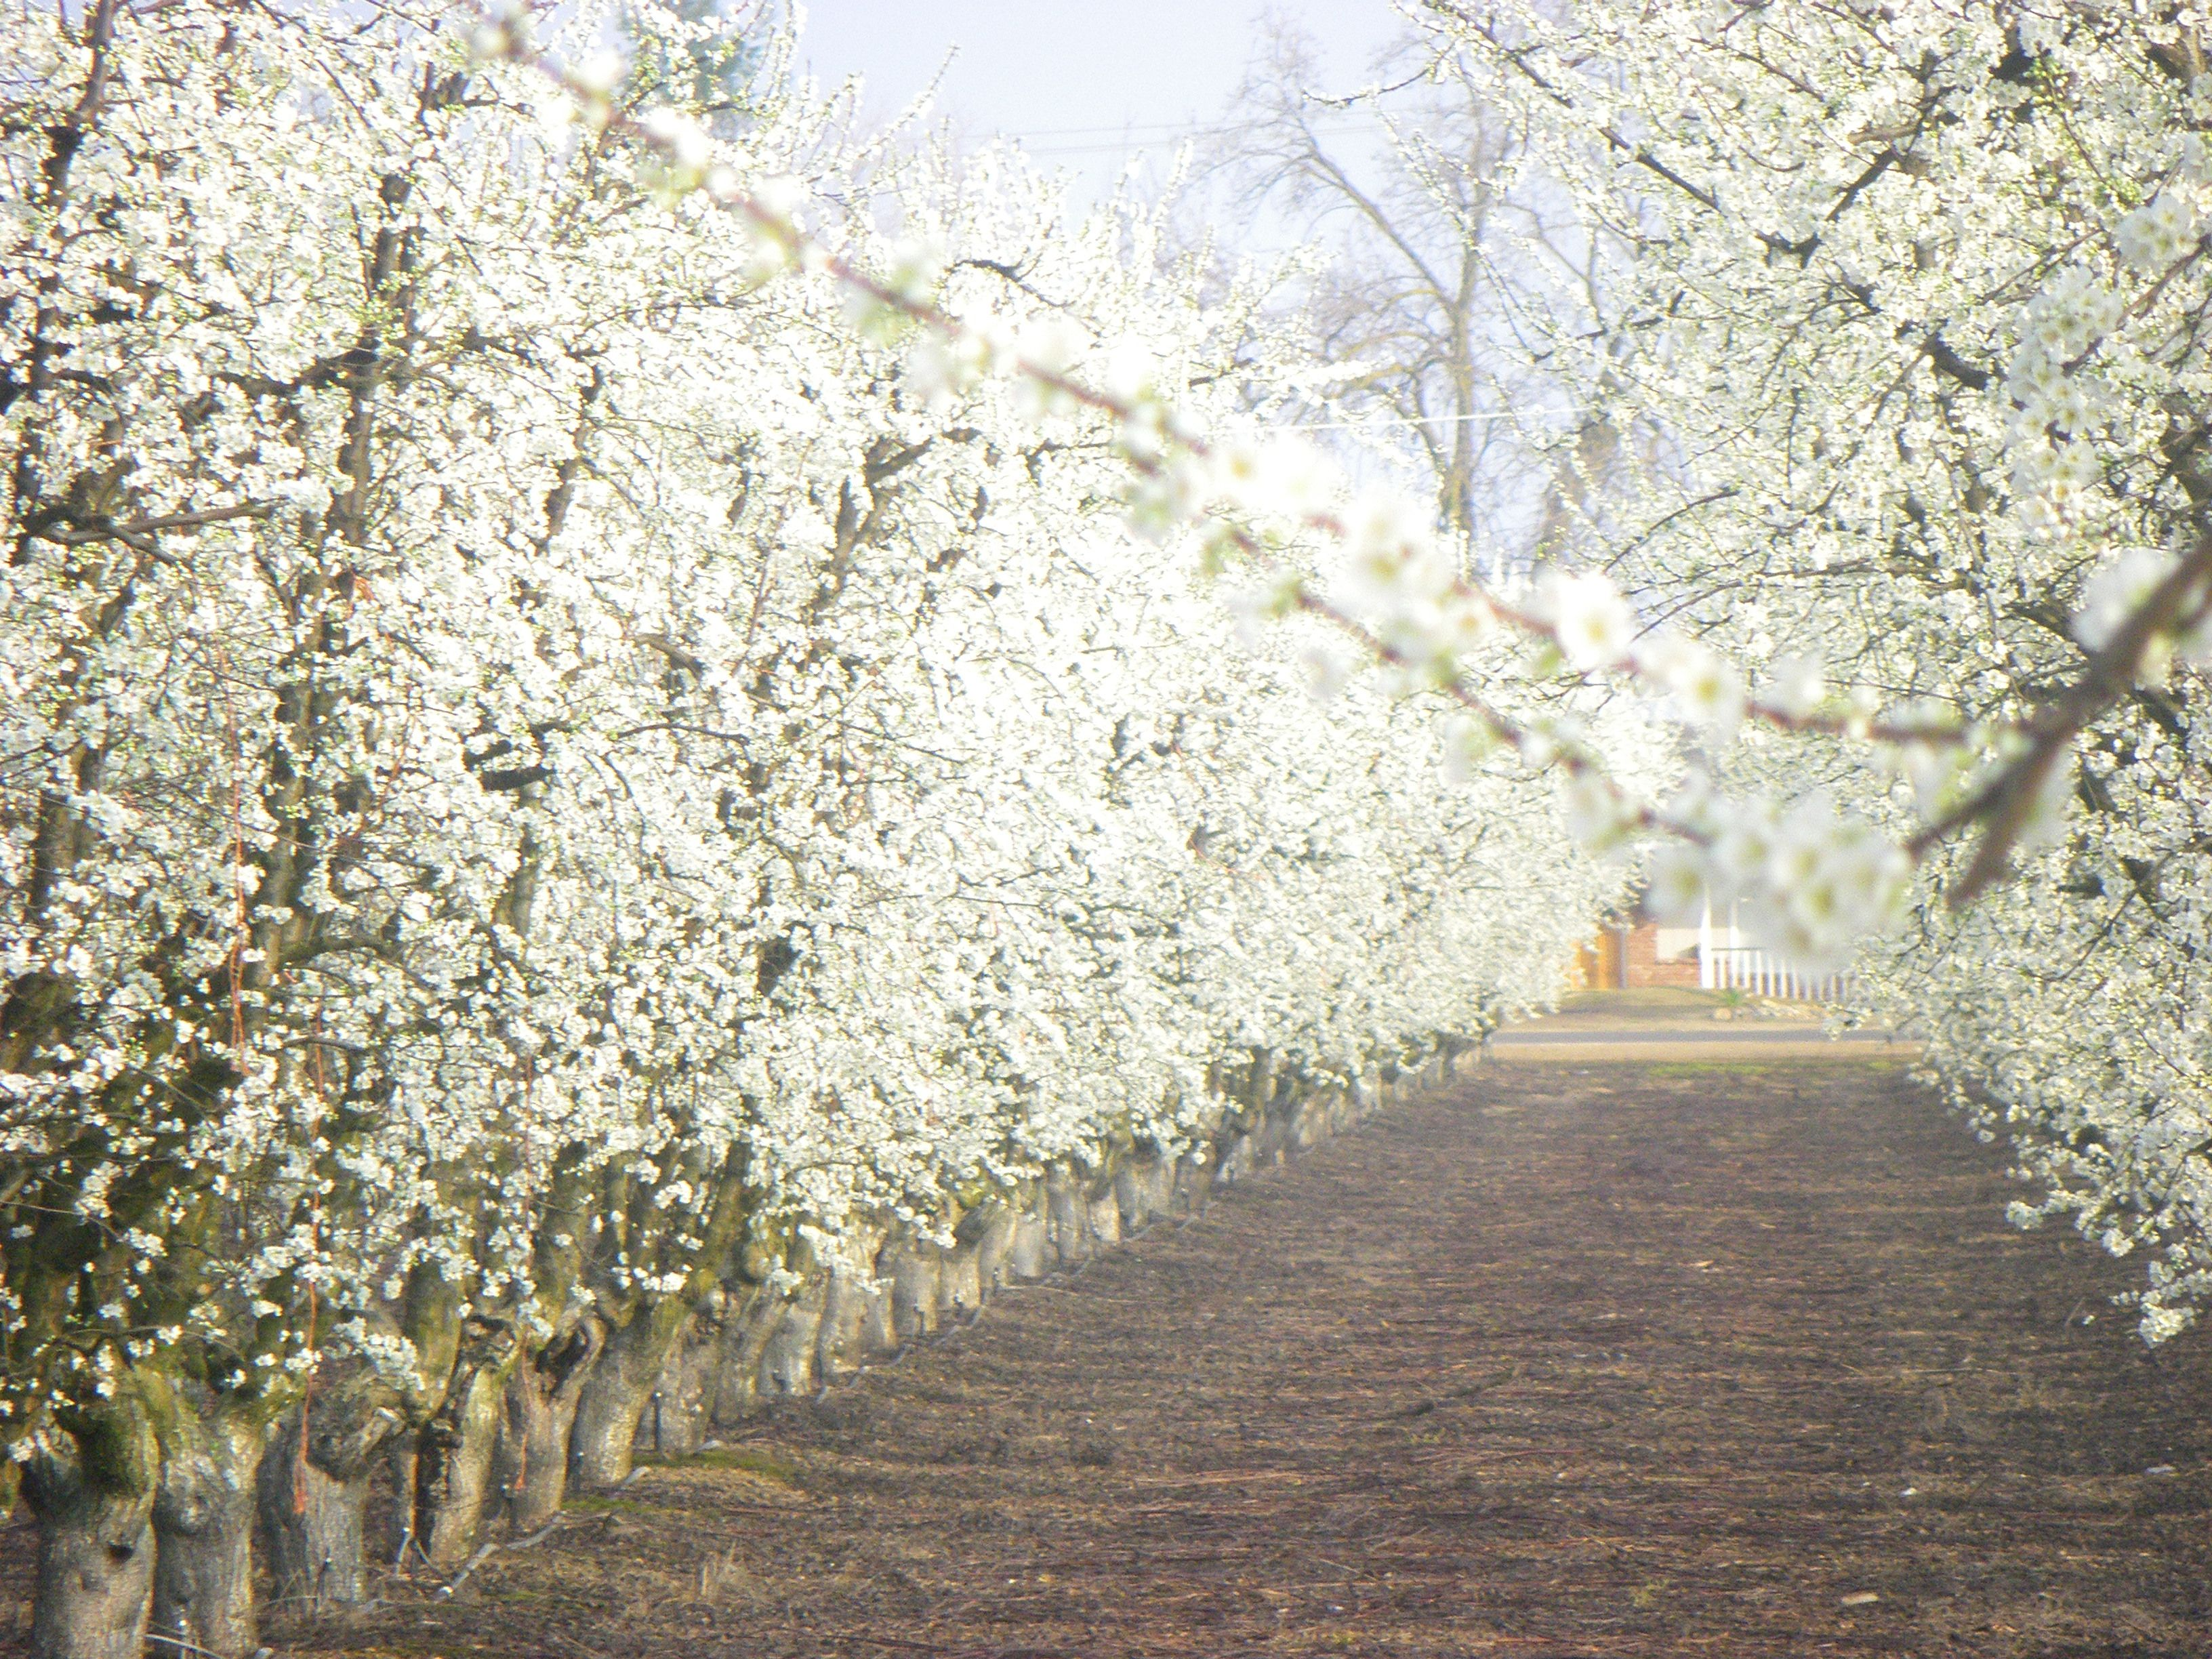 In The Field During Early Spring Trees Are Entering The Bud And Bloom Stage White Blossoms On Plum Trees Pink Blossoms Farm Fresh Fruit Farm Pink Blossom